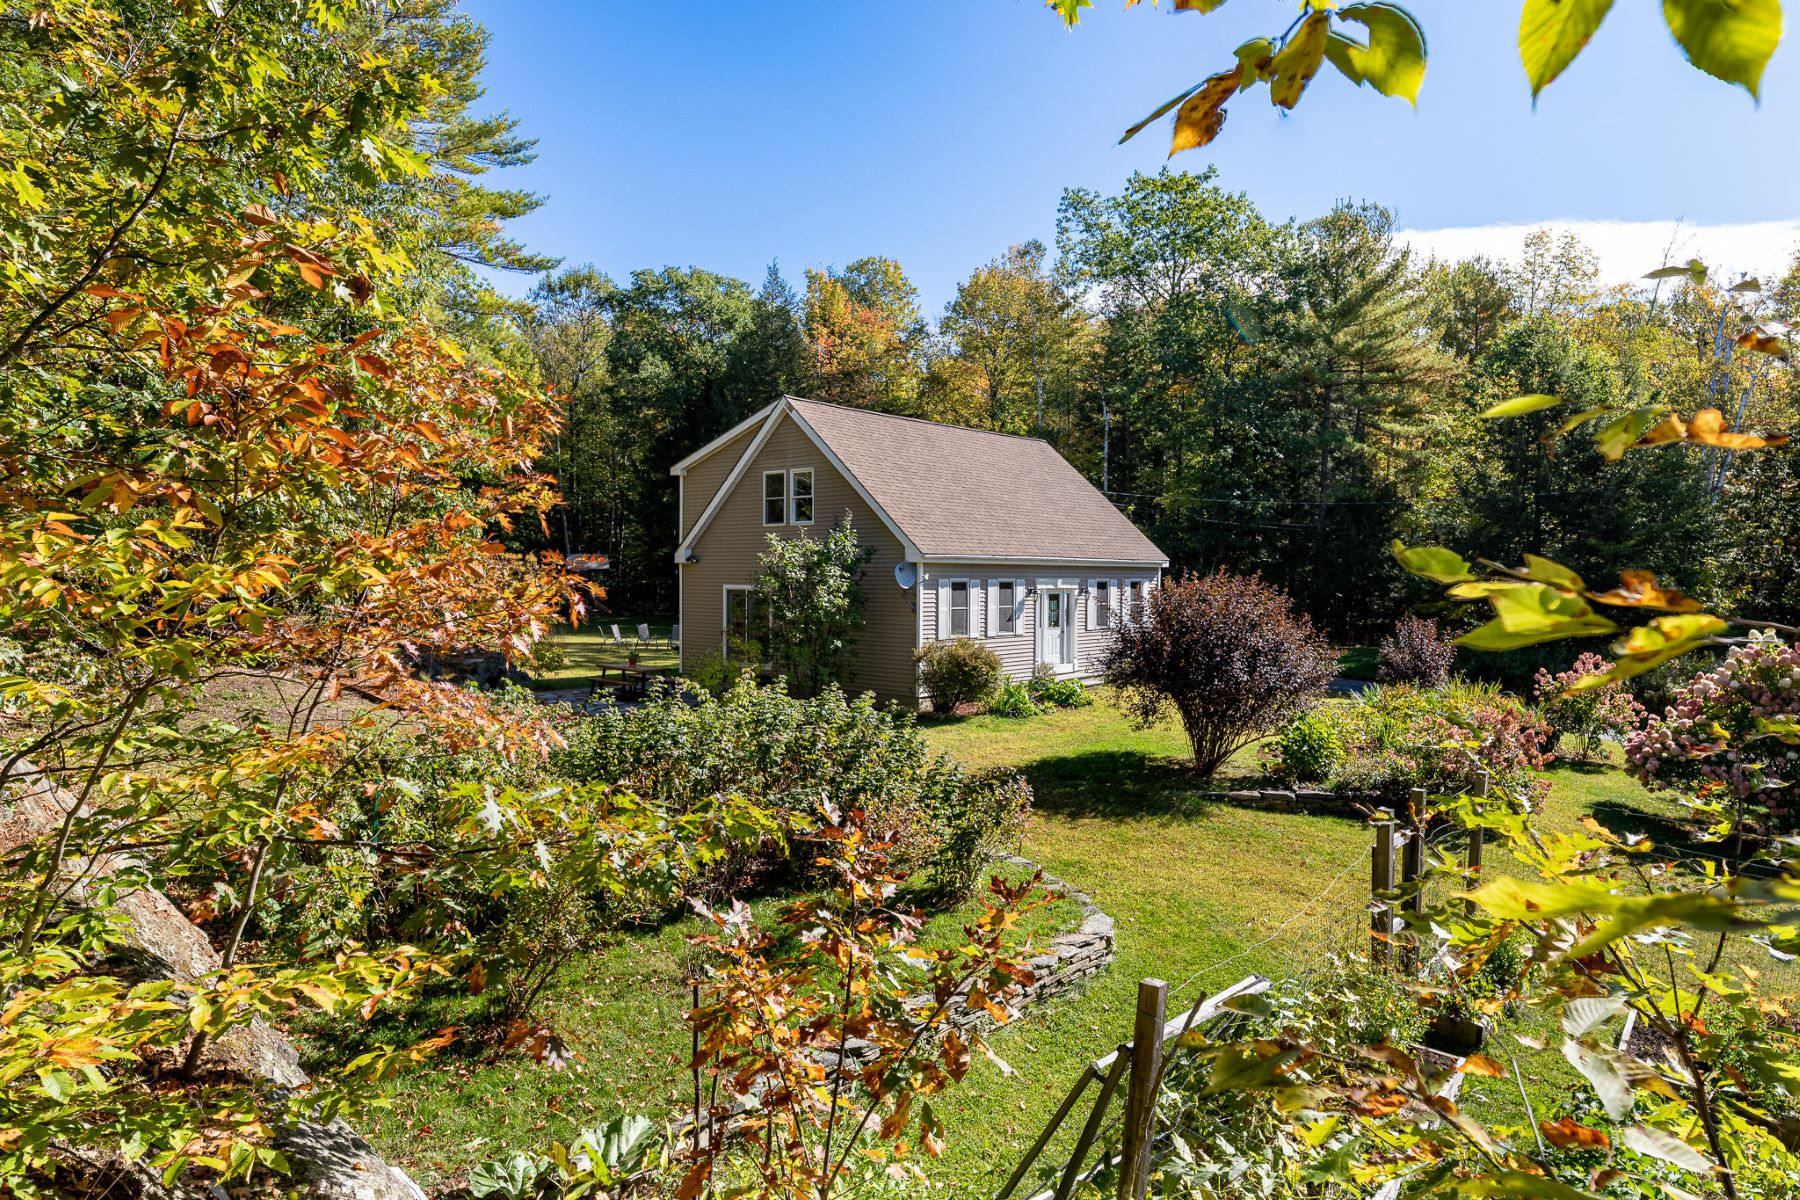 Single Family Homes for Sale at 158 Deer Run Lane Thetford, Vermont 05043 United States